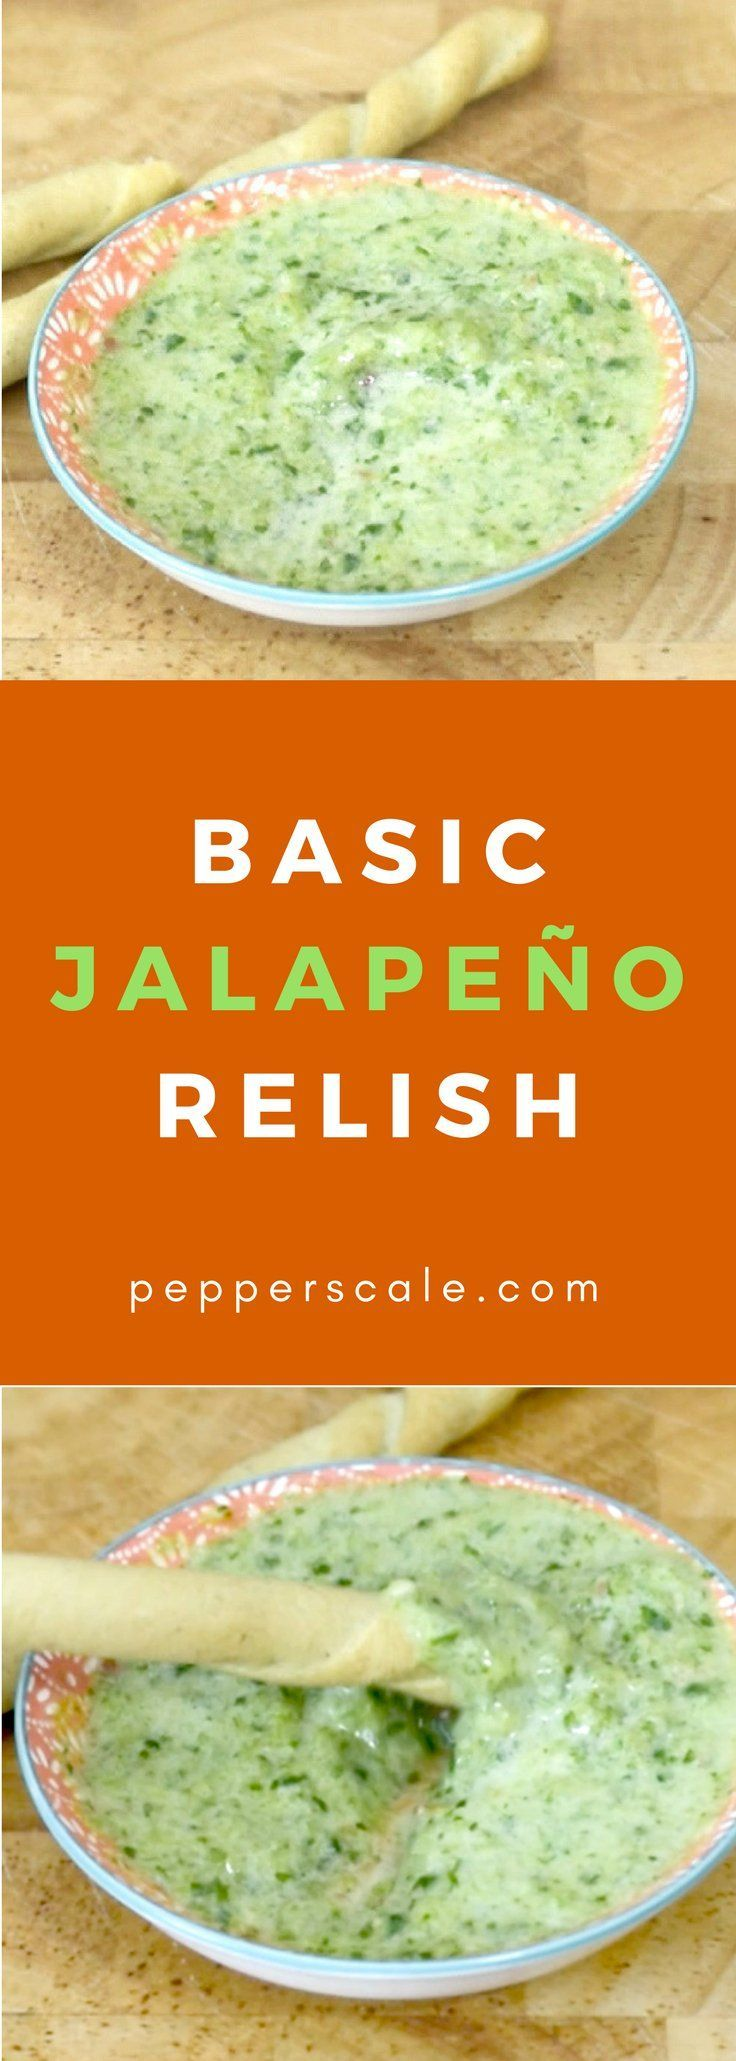 Basic jalapeño relish adds some spicy zip to hamburgers and hot dogs. Get the #recipe via @pepperscale